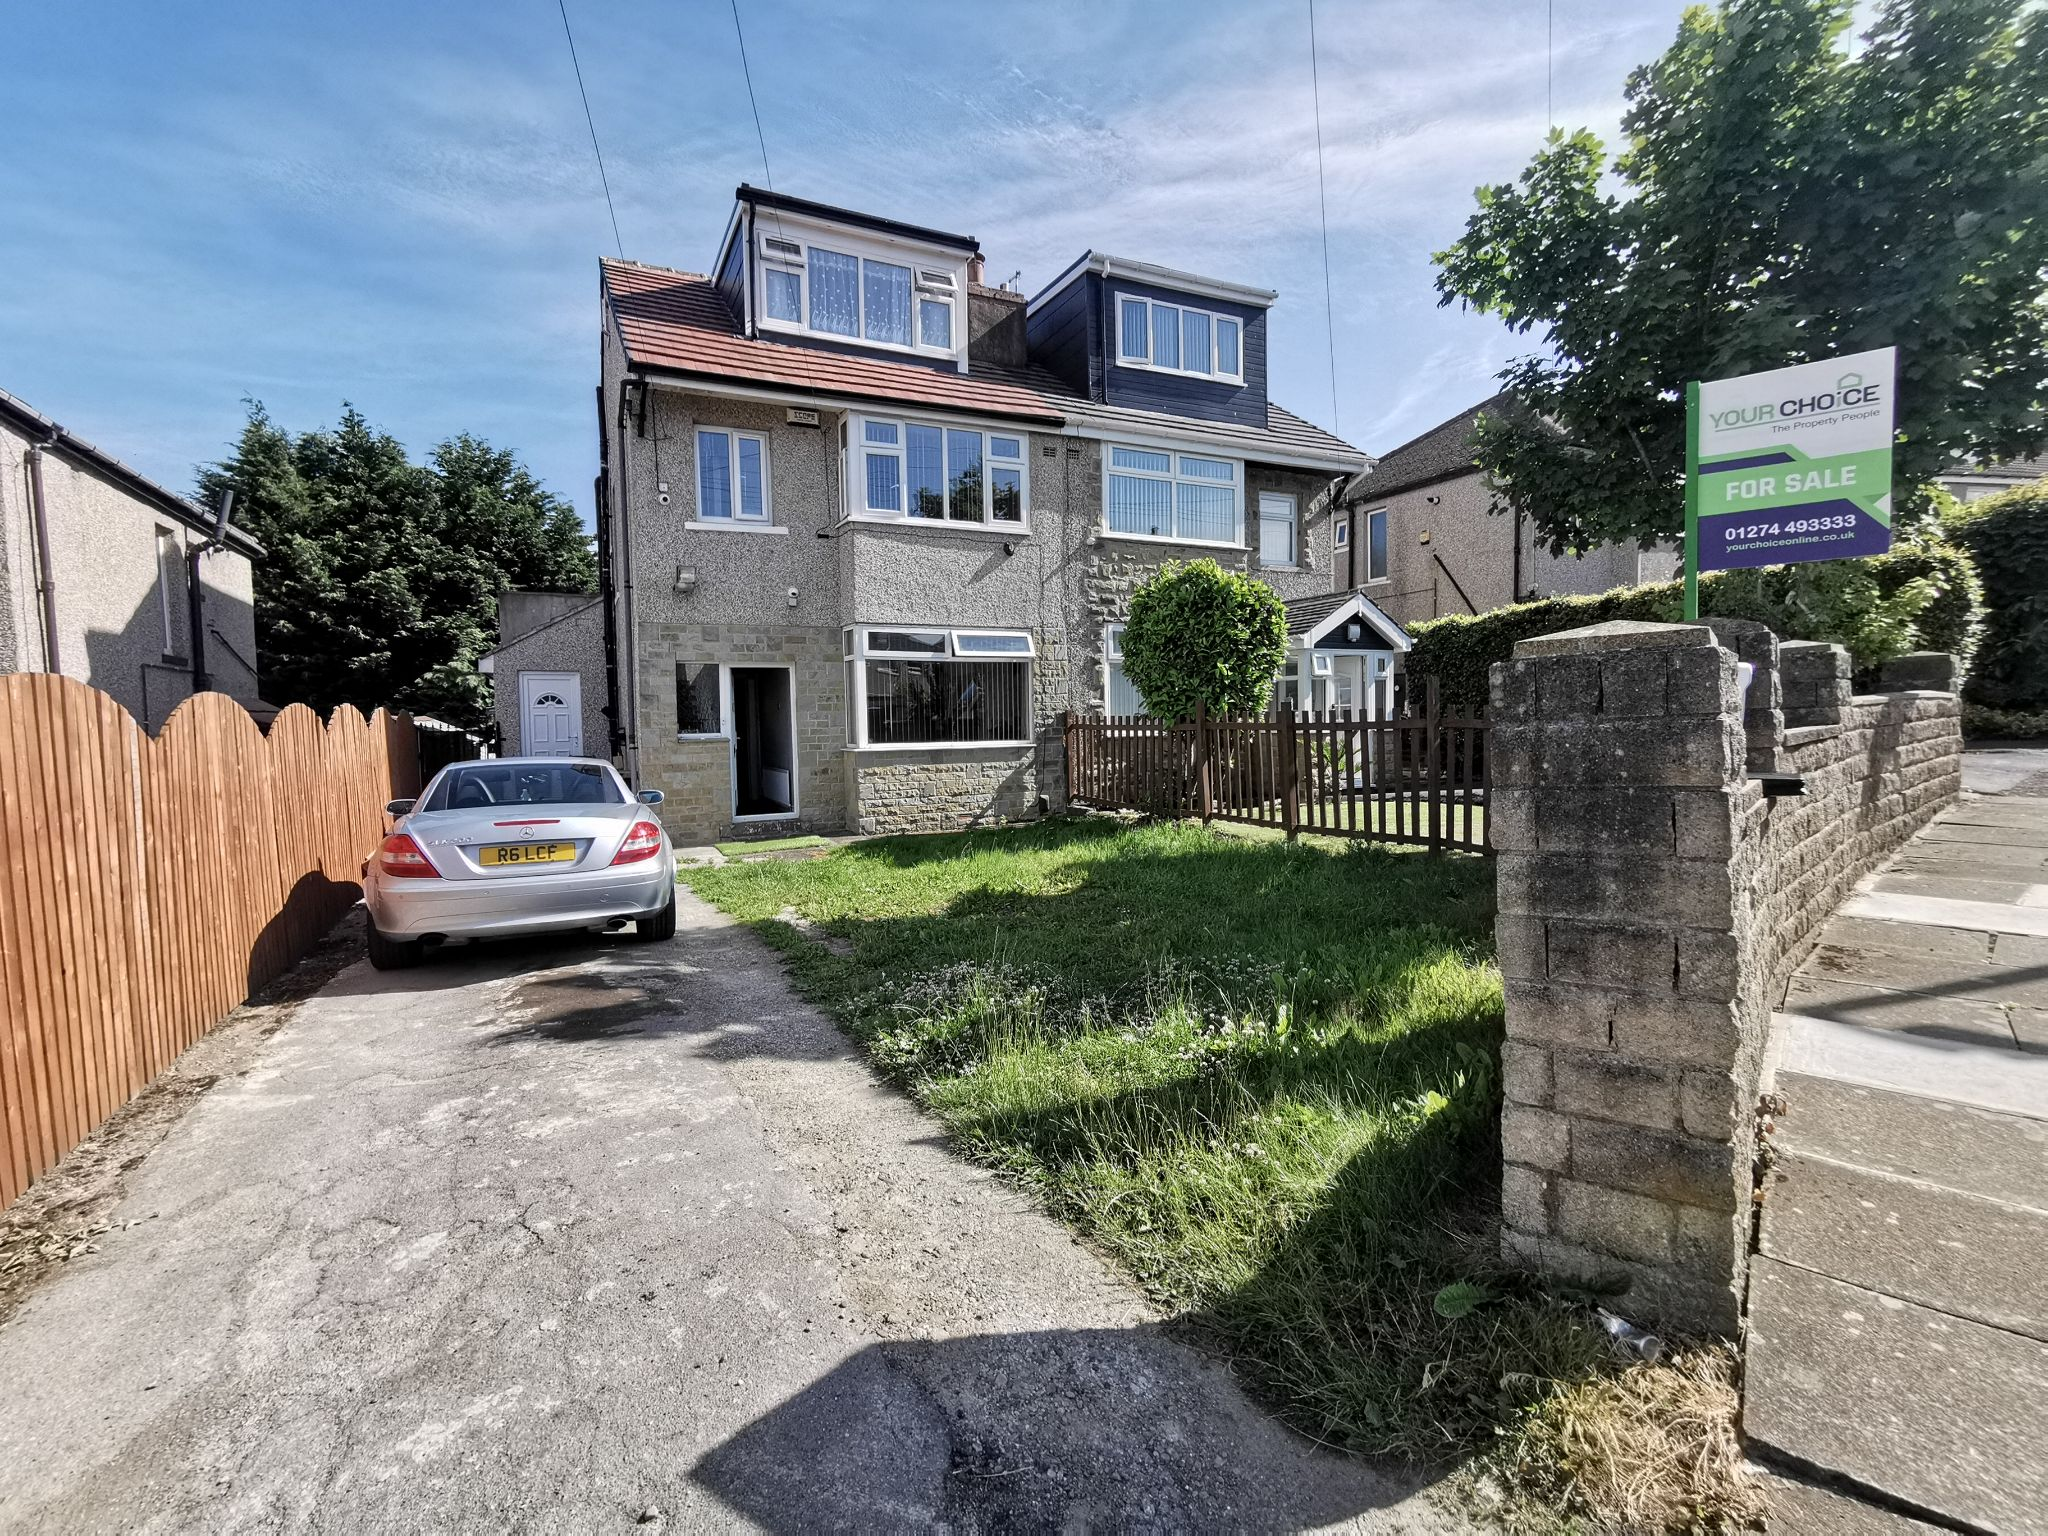 4 bedroom semi-detached house SSTC in Bradford - Photograph 1.